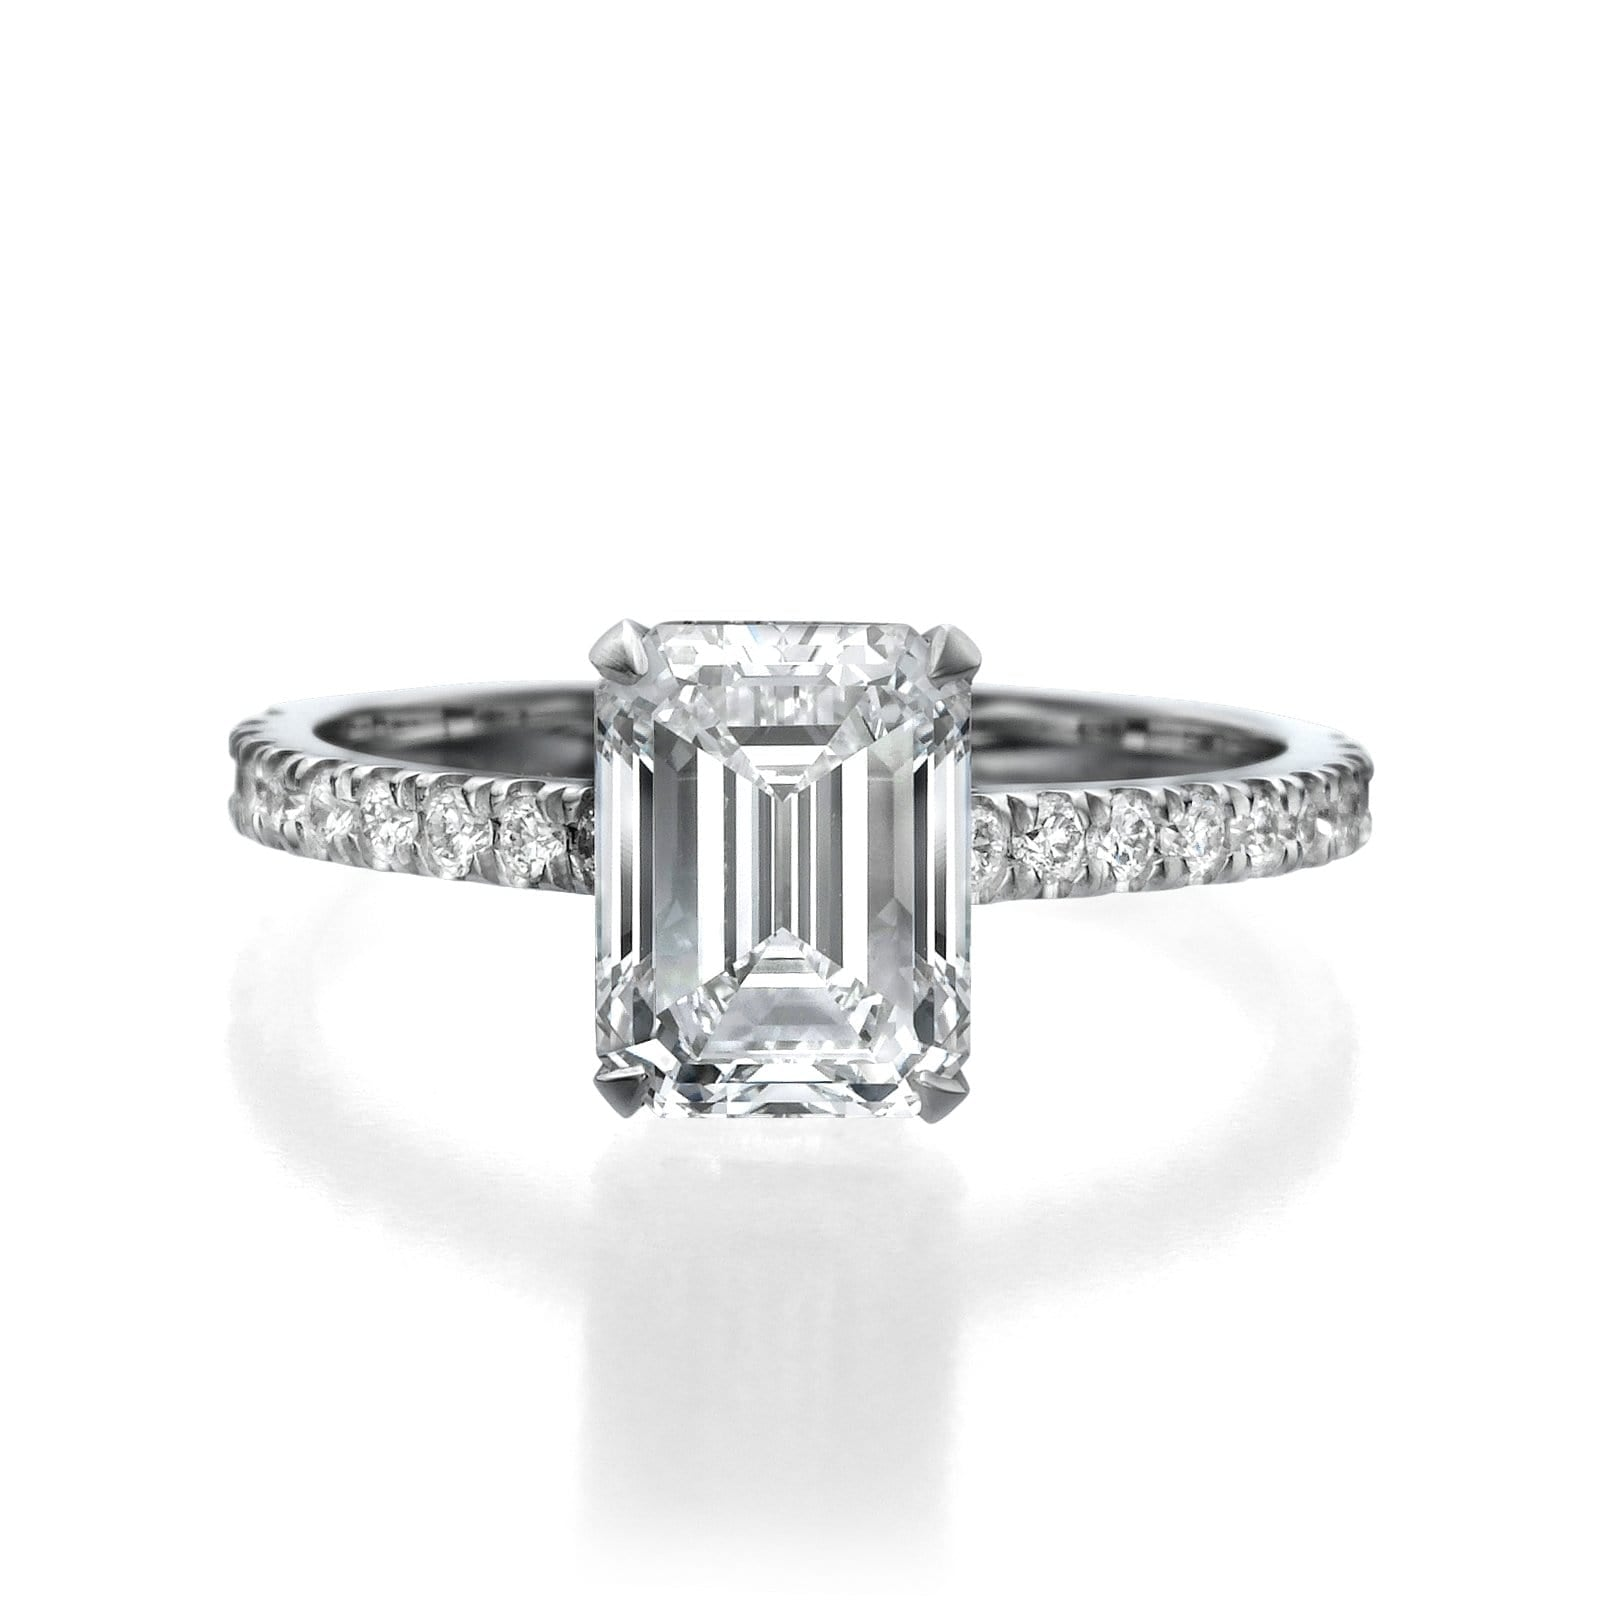 2.50 ct Emerald Cut Diamond Engagement Ring